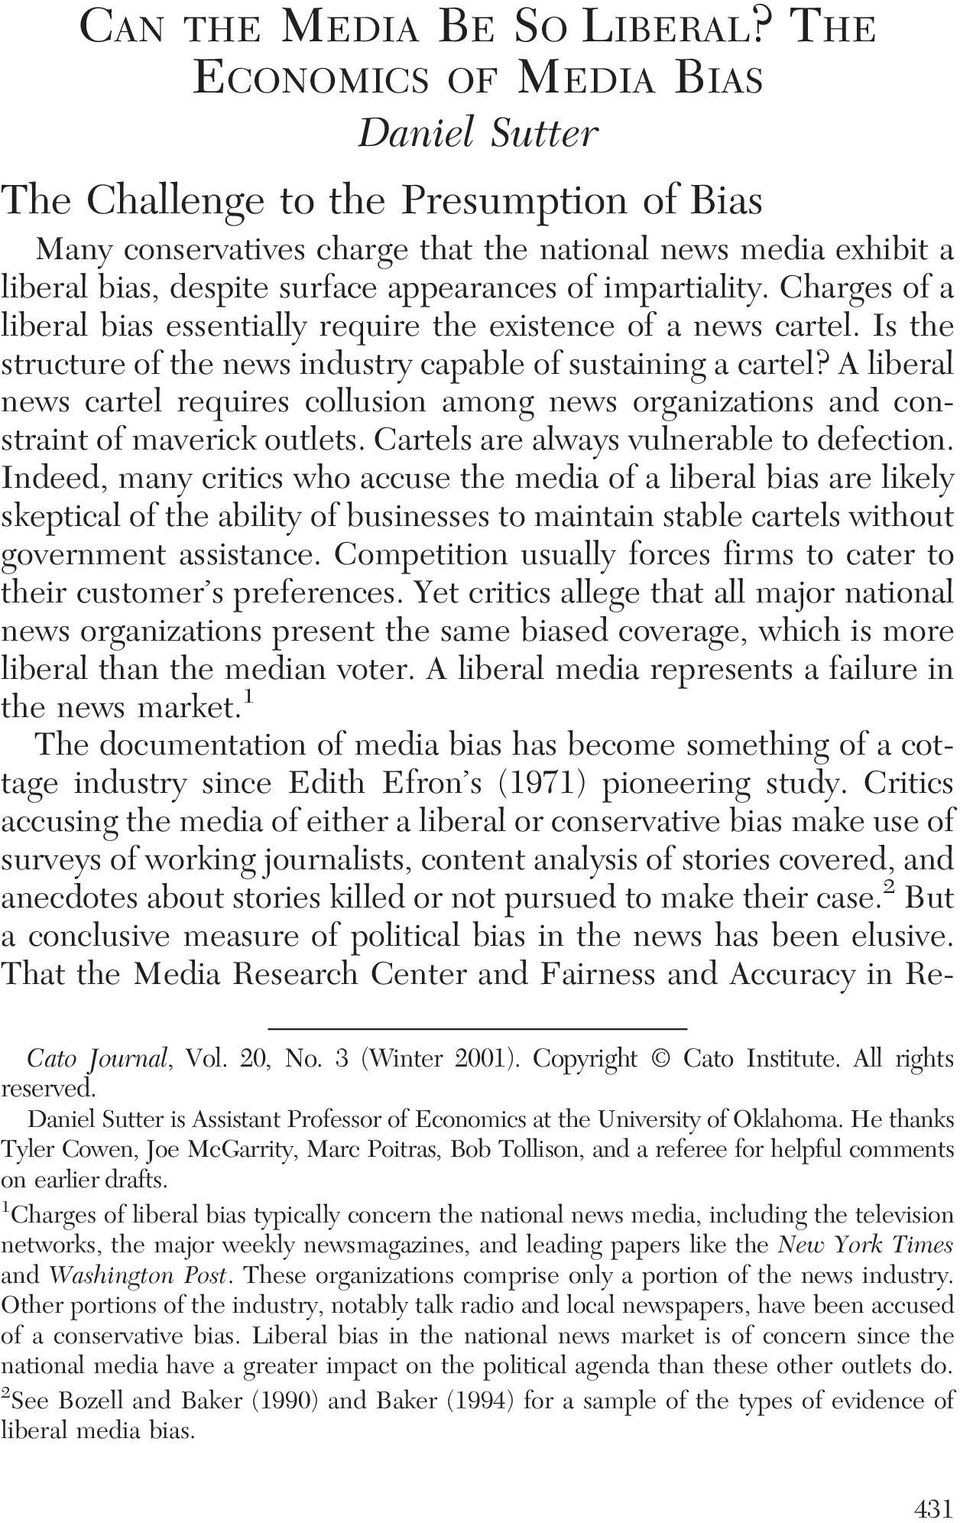 impartiality. Charges of a liberal bias essentially require the existence of a news cartel. Is the structure of the news industry capable of sustaining a cartel?